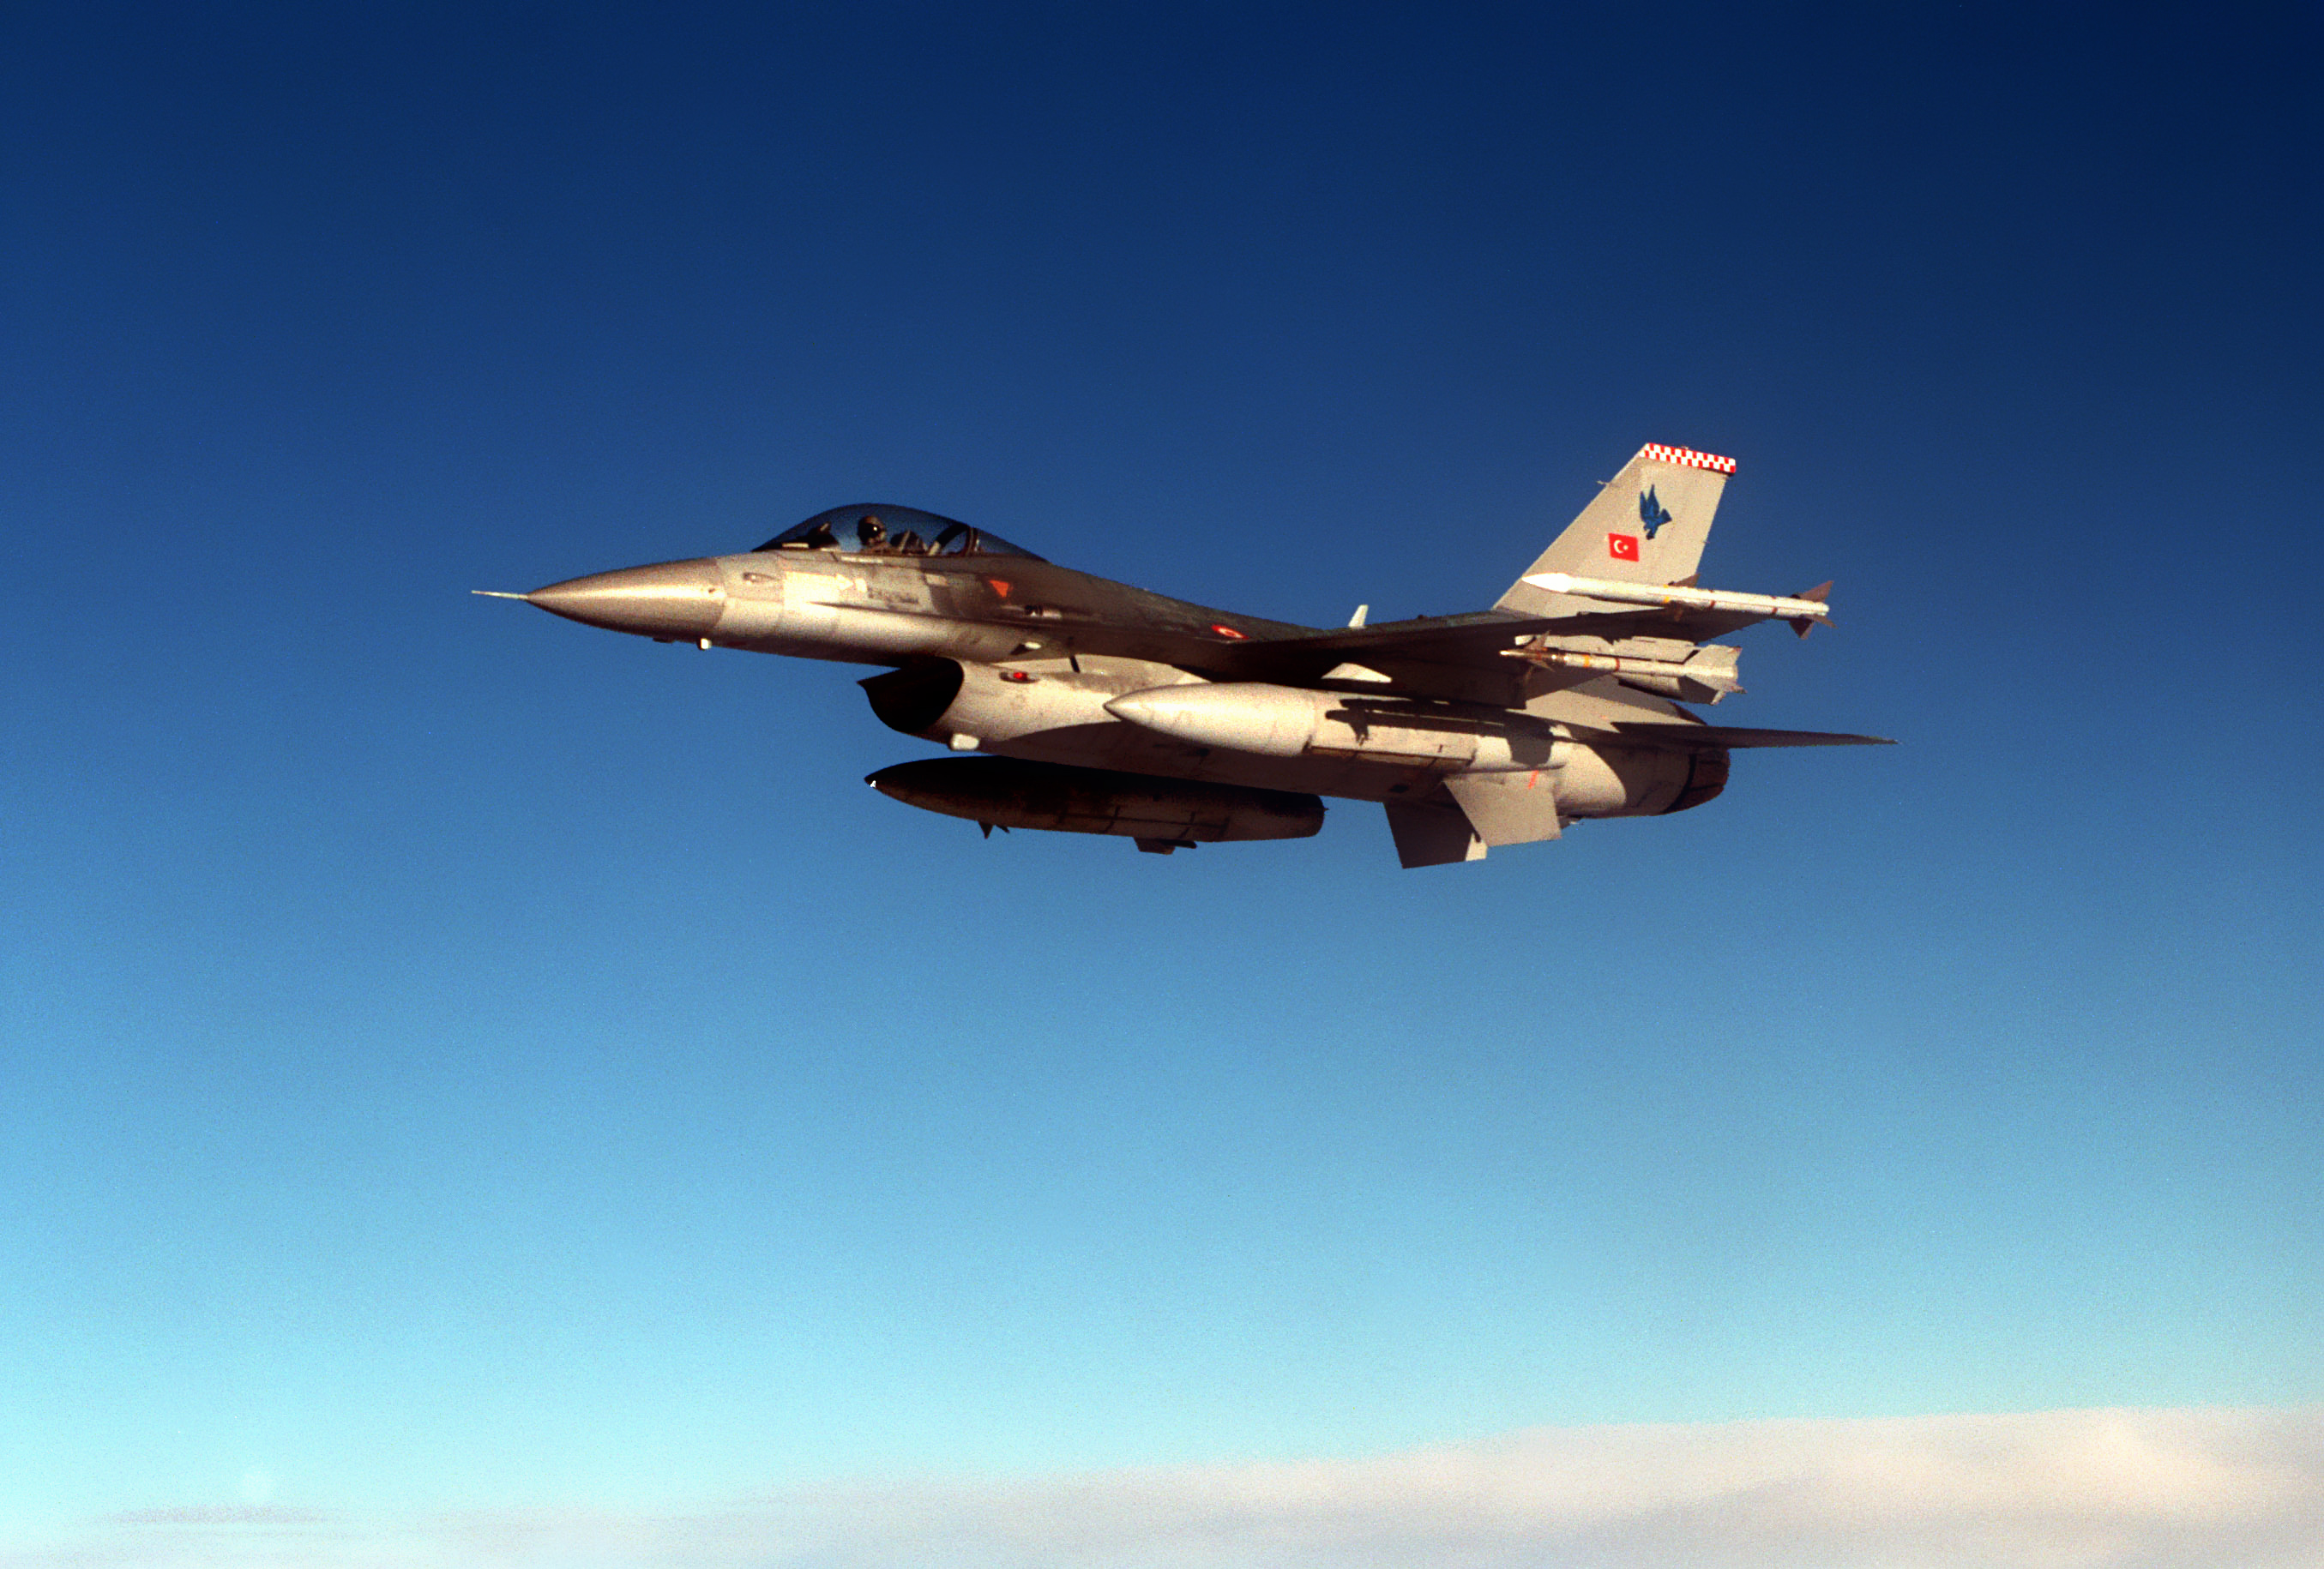 http://upload.wikimedia.org/wikipedia/commons/f/f6/F-16C_Falcon_from_the_Turkish_Air_Force.JPEG